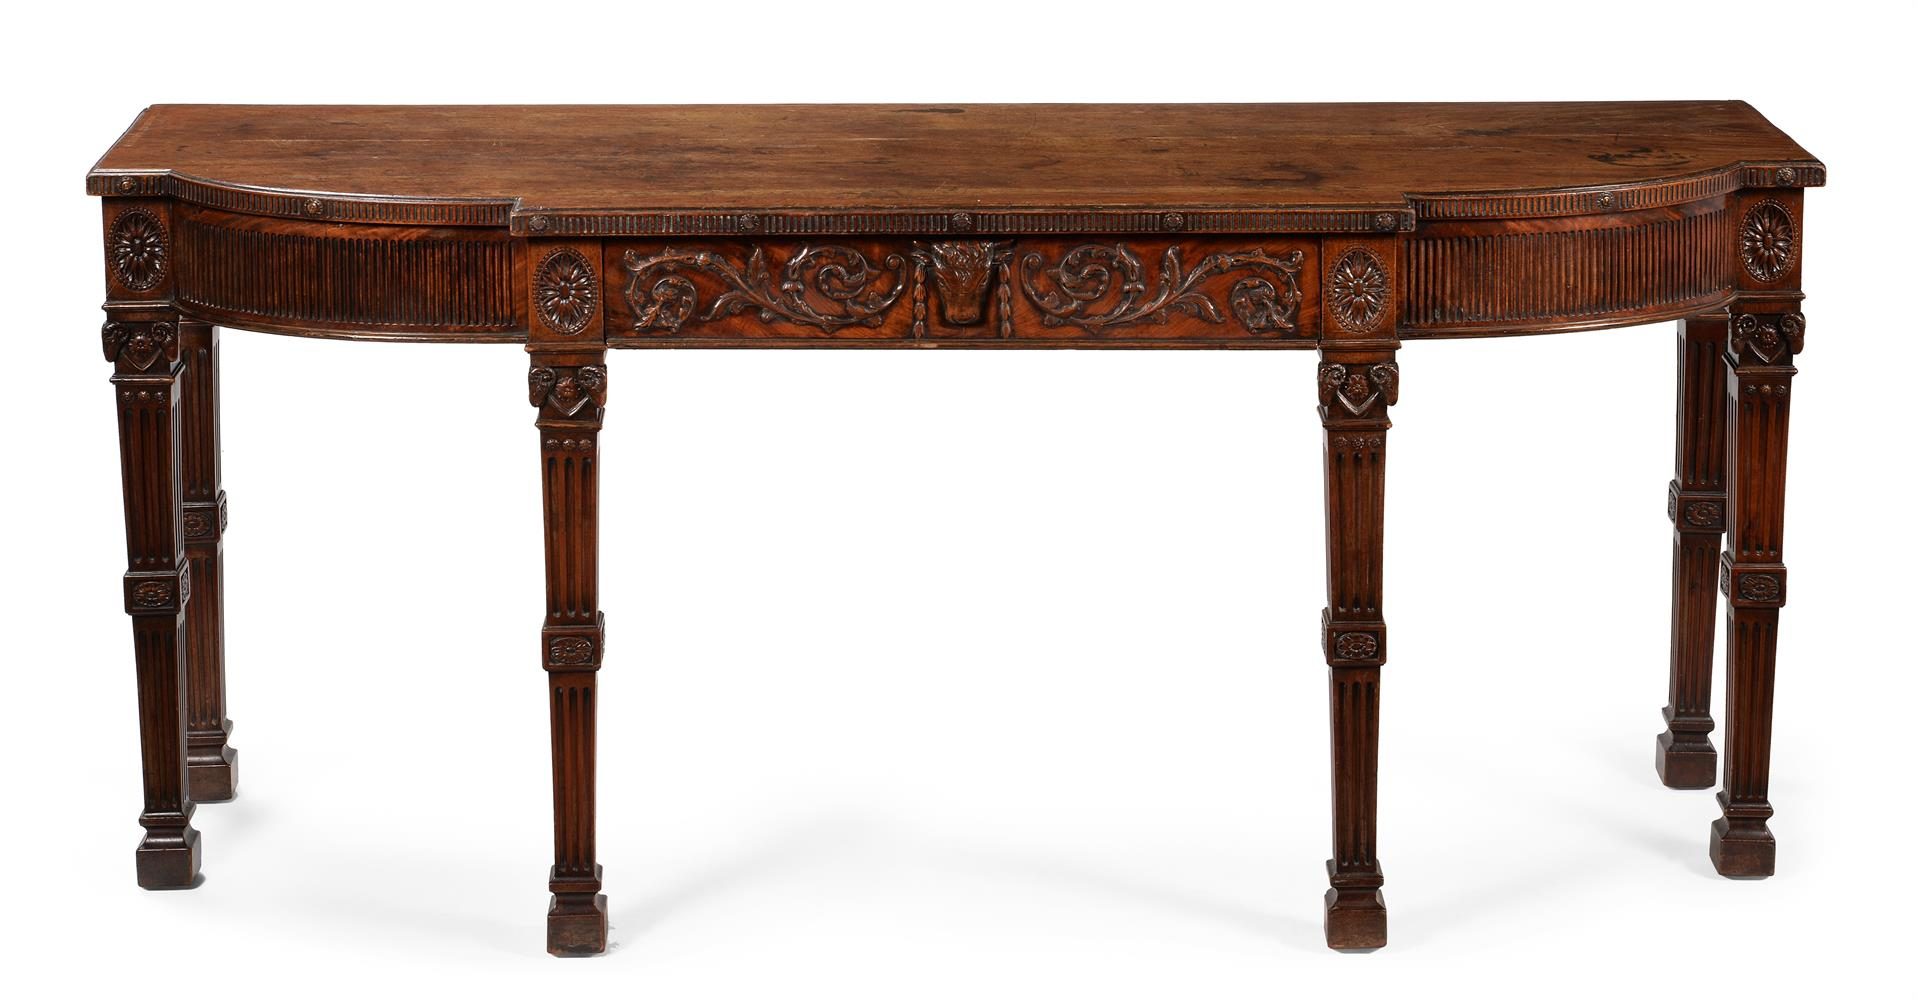 A GEORGE III MAHOGANY SERVING OR HALL TABLE, CIRCA 1785 - Image 2 of 6